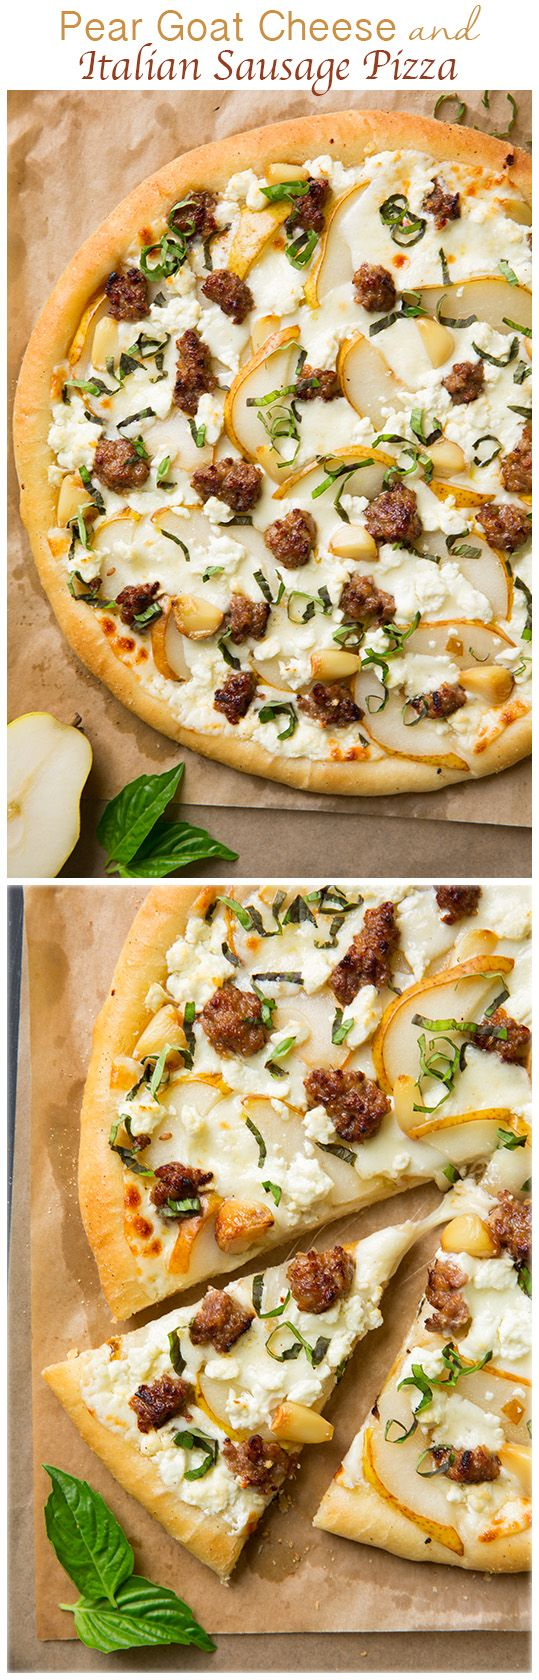 Pear Goat Cheese and Italian Sausage Pizza with Roasted Garlic and Fresh Basil - this pizza is out of this world AMAZING! If you like flavor you'll love this pizza!! The ultimate fall pizza. (gf dough)